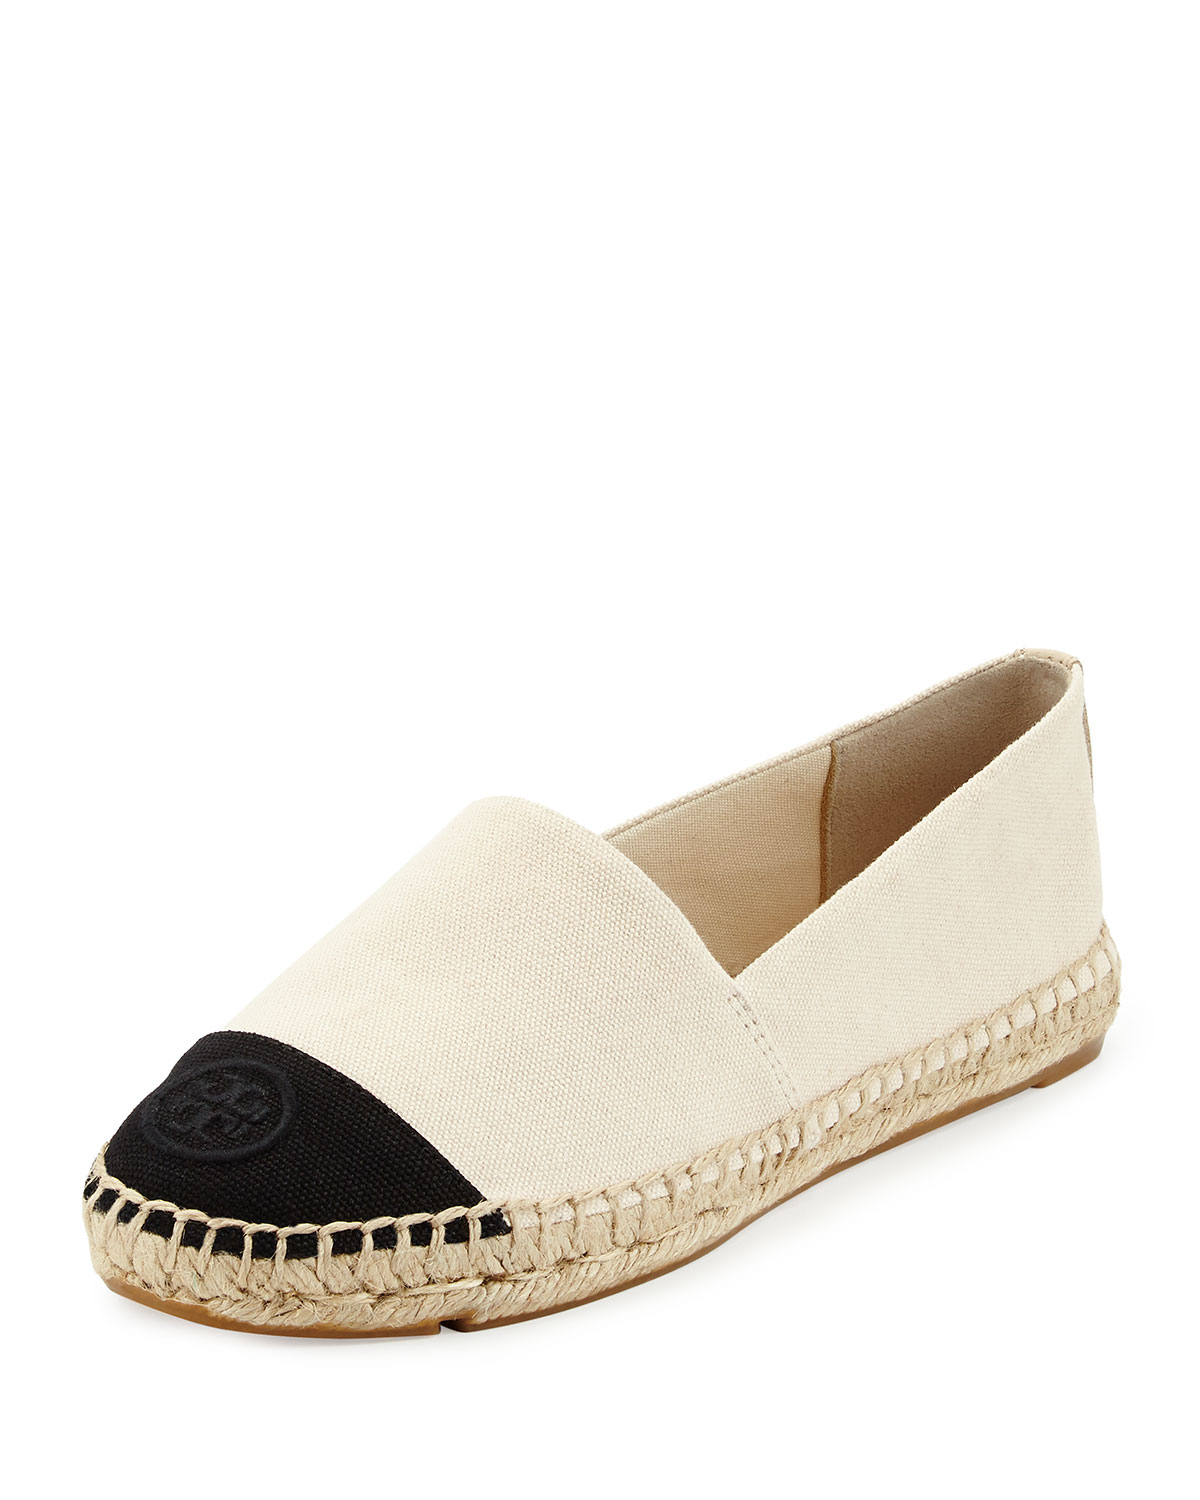 799b8ef3844 Tory Burch Canvas Colorblock Espadrille Flat